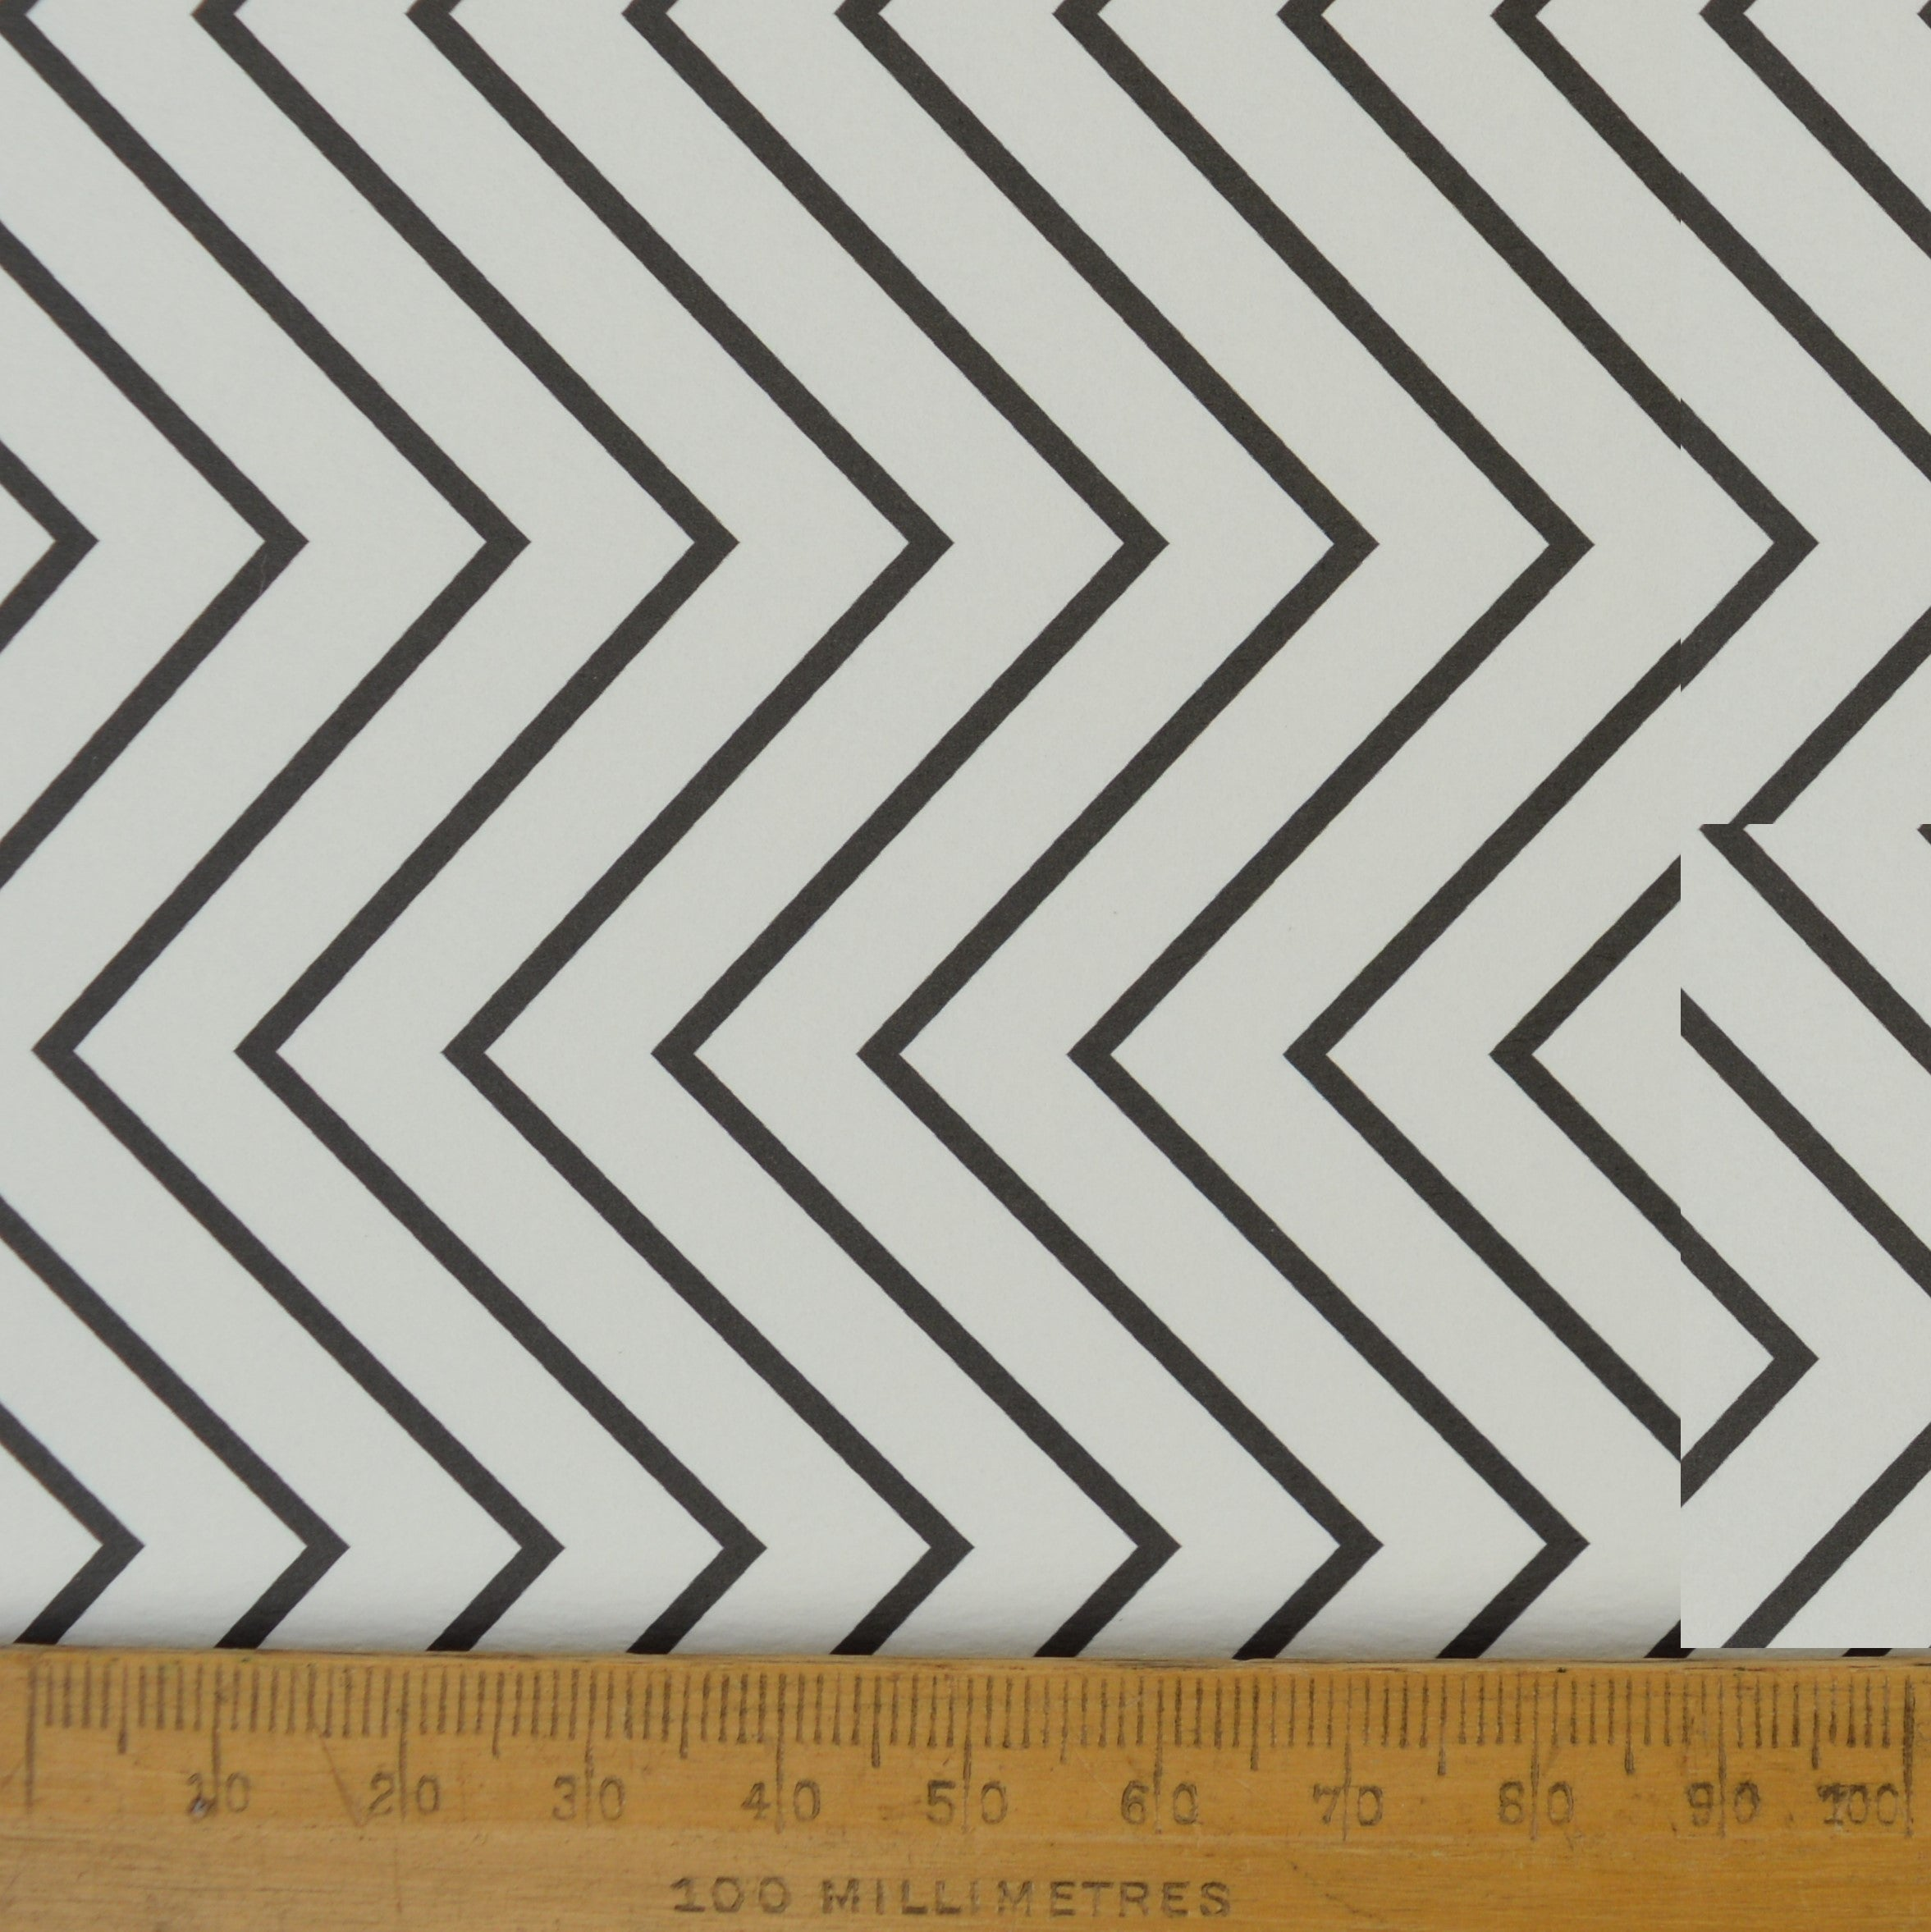 Munro and Kerr zig zag black and white monochrome paper for a lampshade